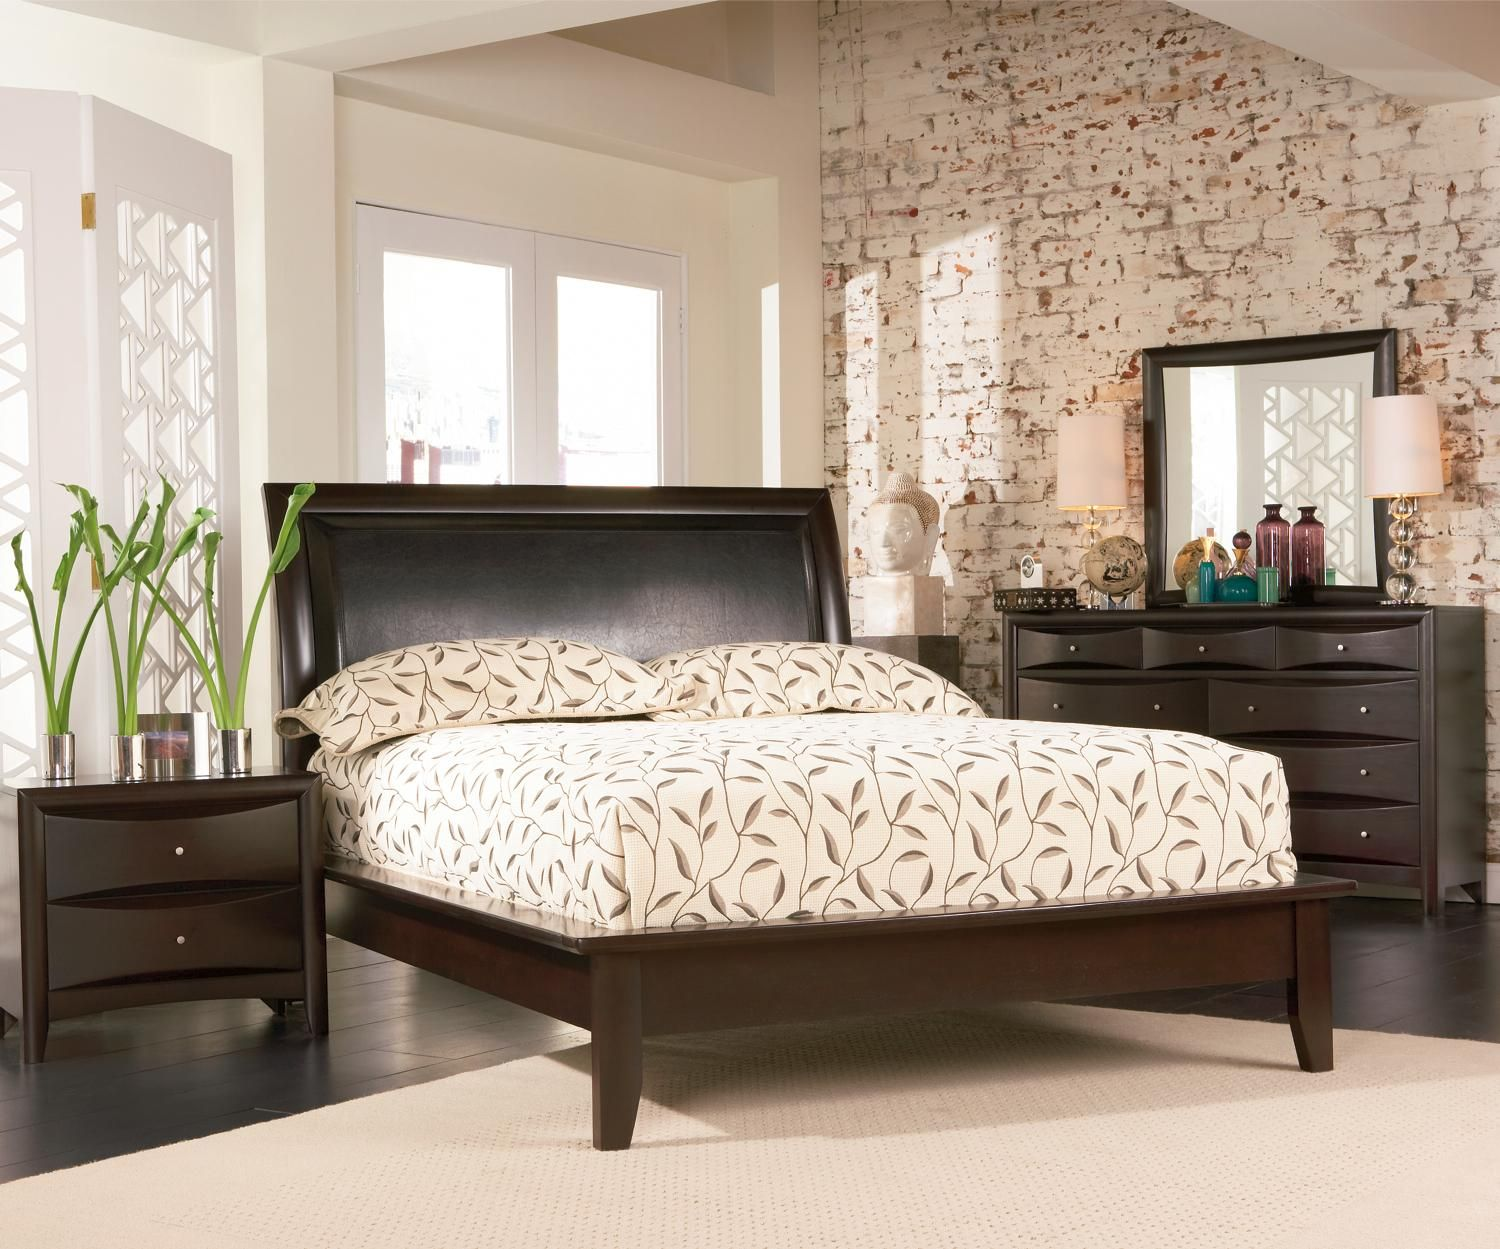 California King Bedroom Group Columbus & Central, Ohio Furniture ...